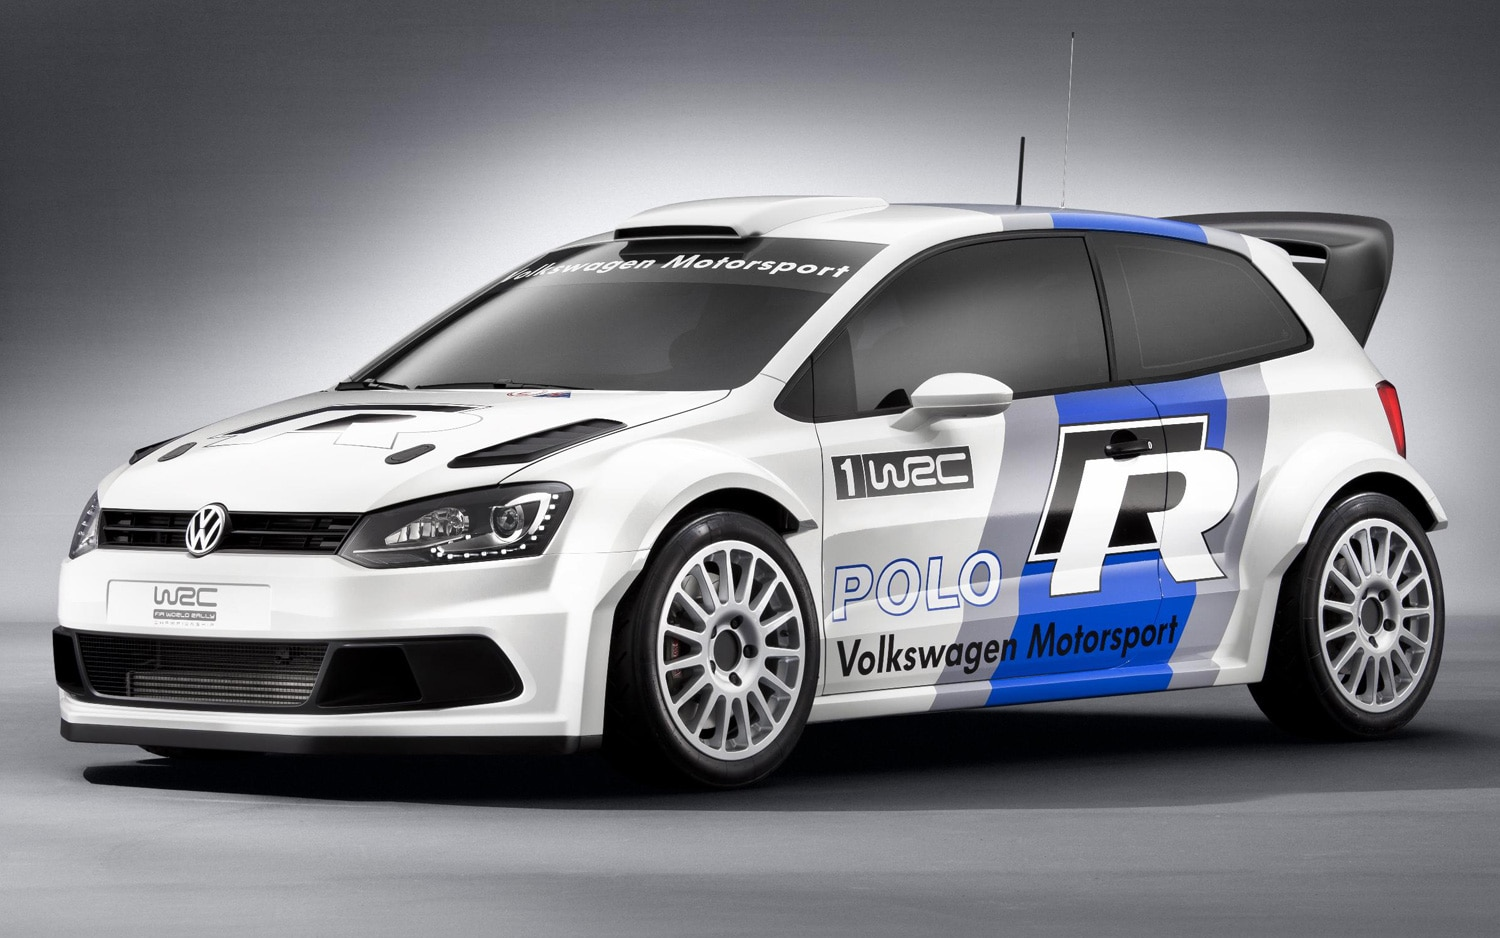 2013 Volkswagen Polo R Wrc Front Three Quarters View11